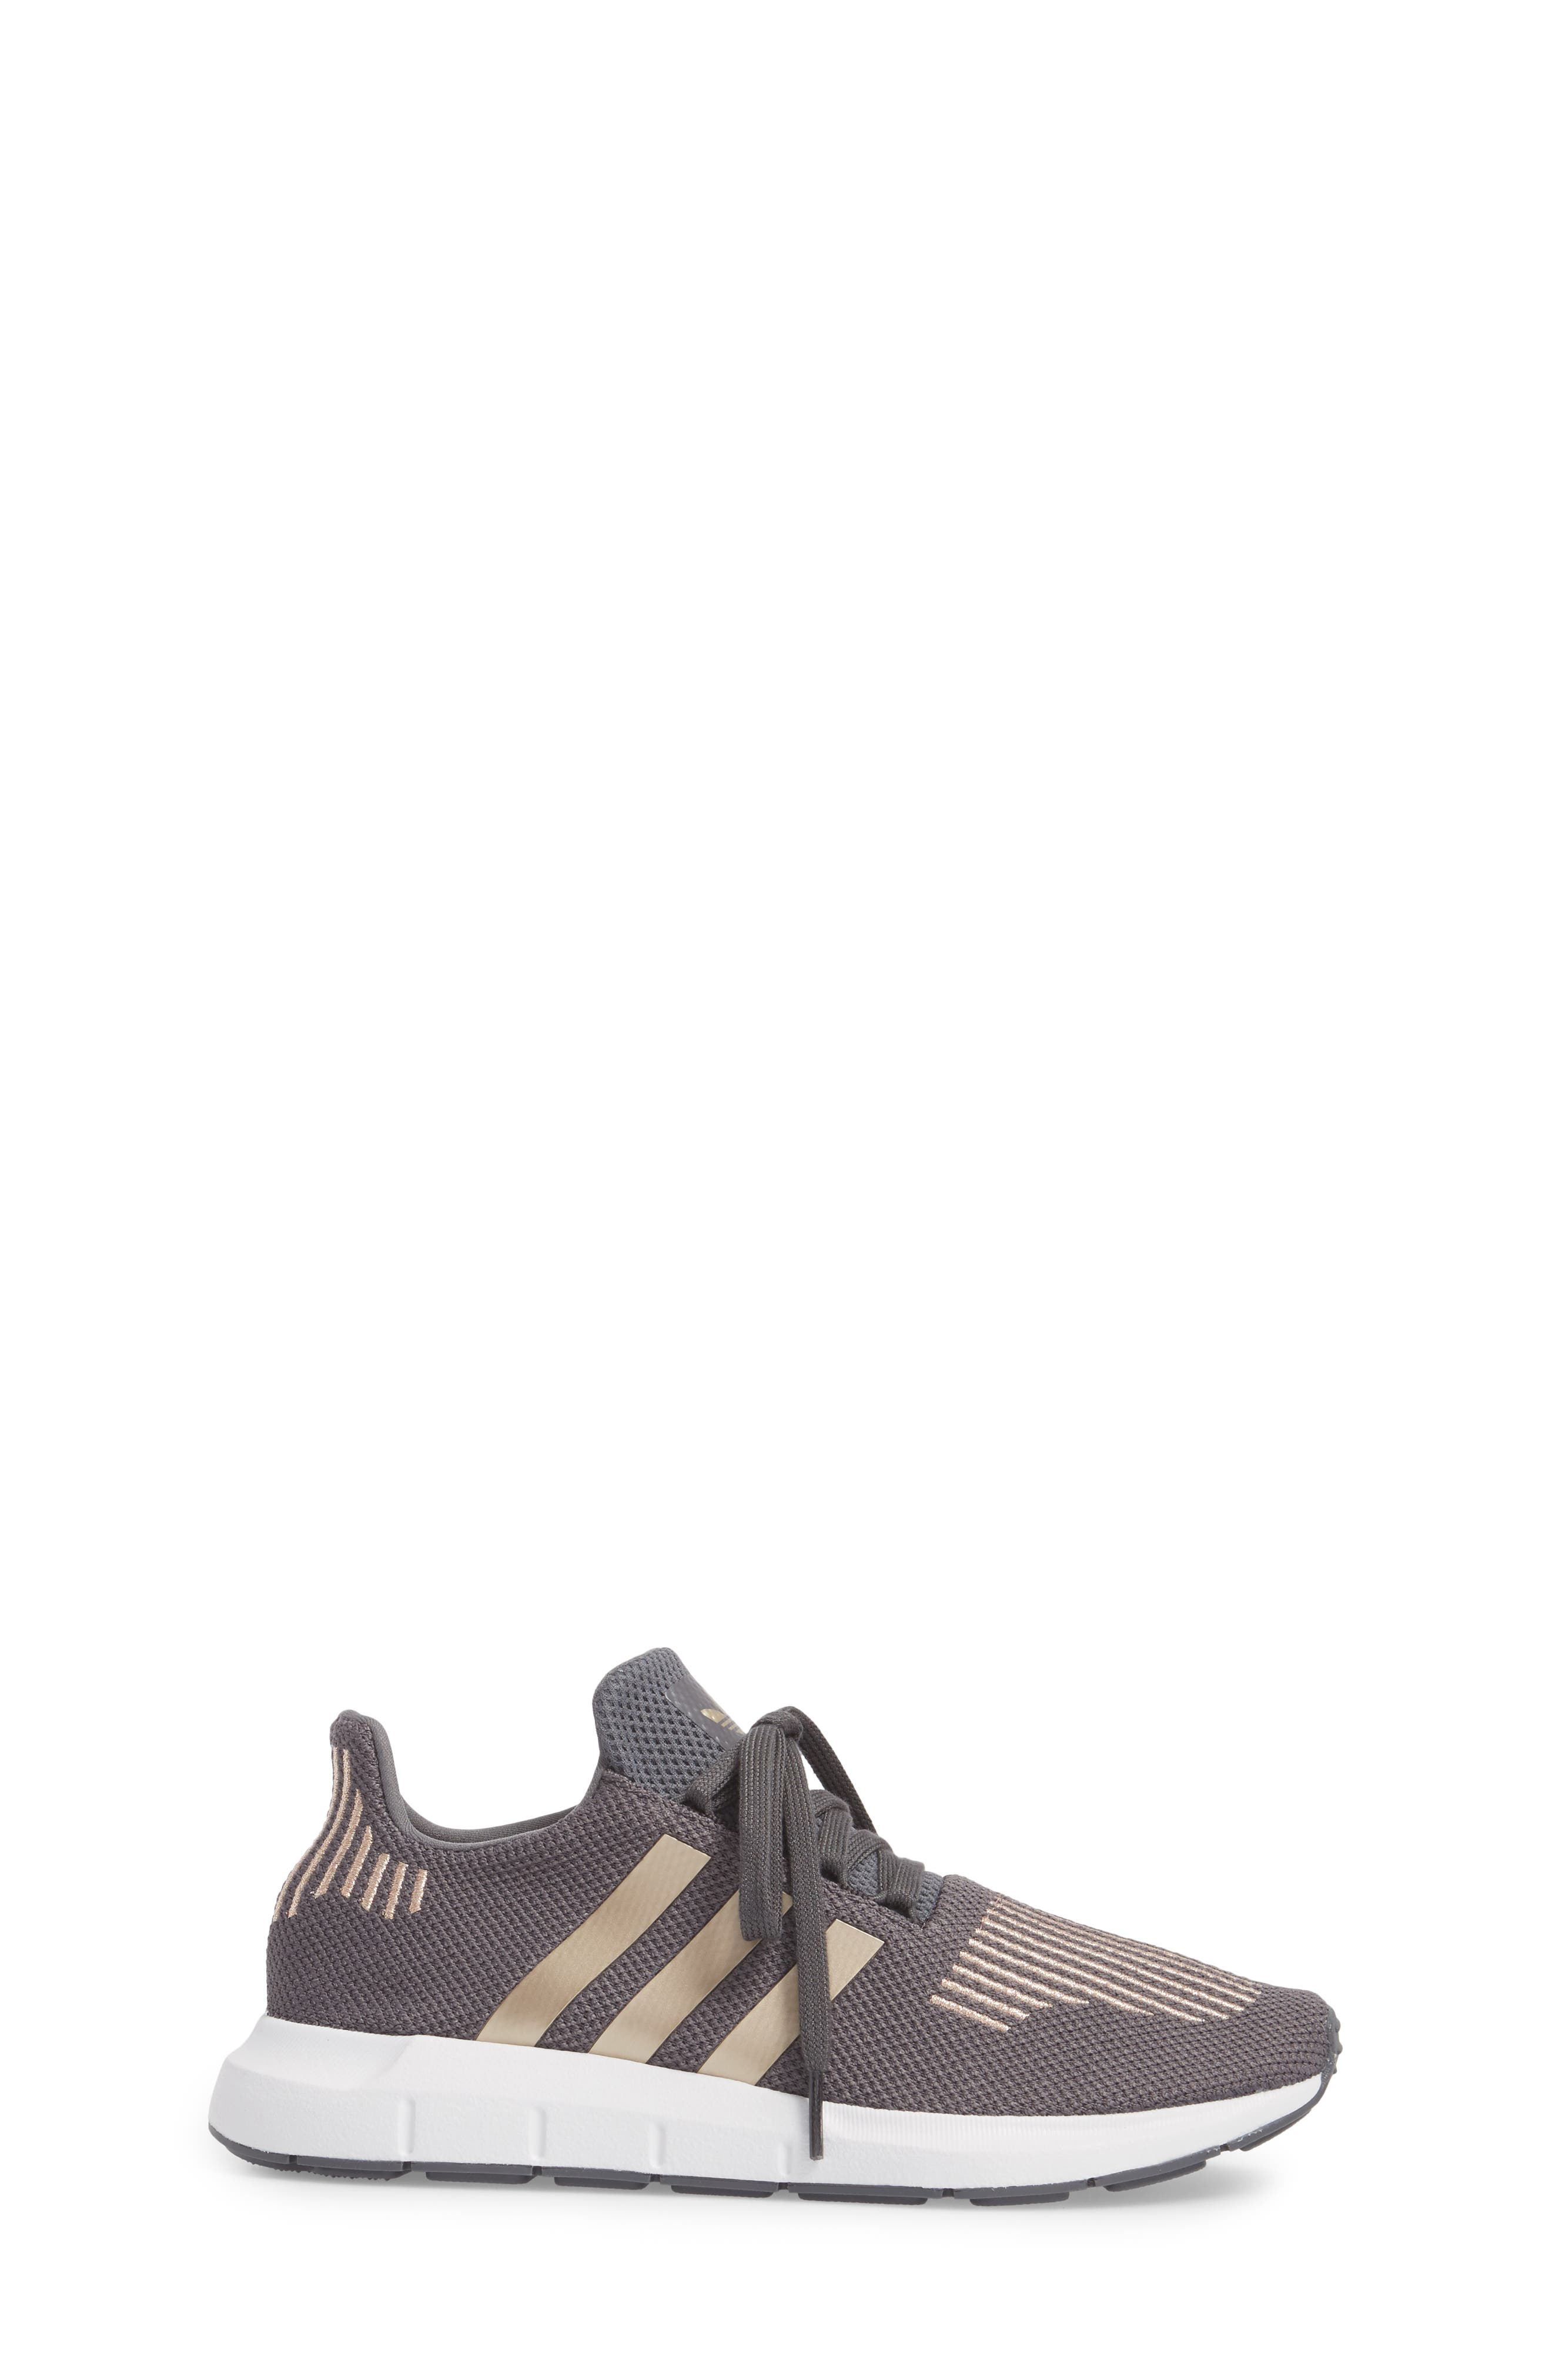 Swift Run Sneaker,                             Alternate thumbnail 3, color,                             Grey / Copper / White